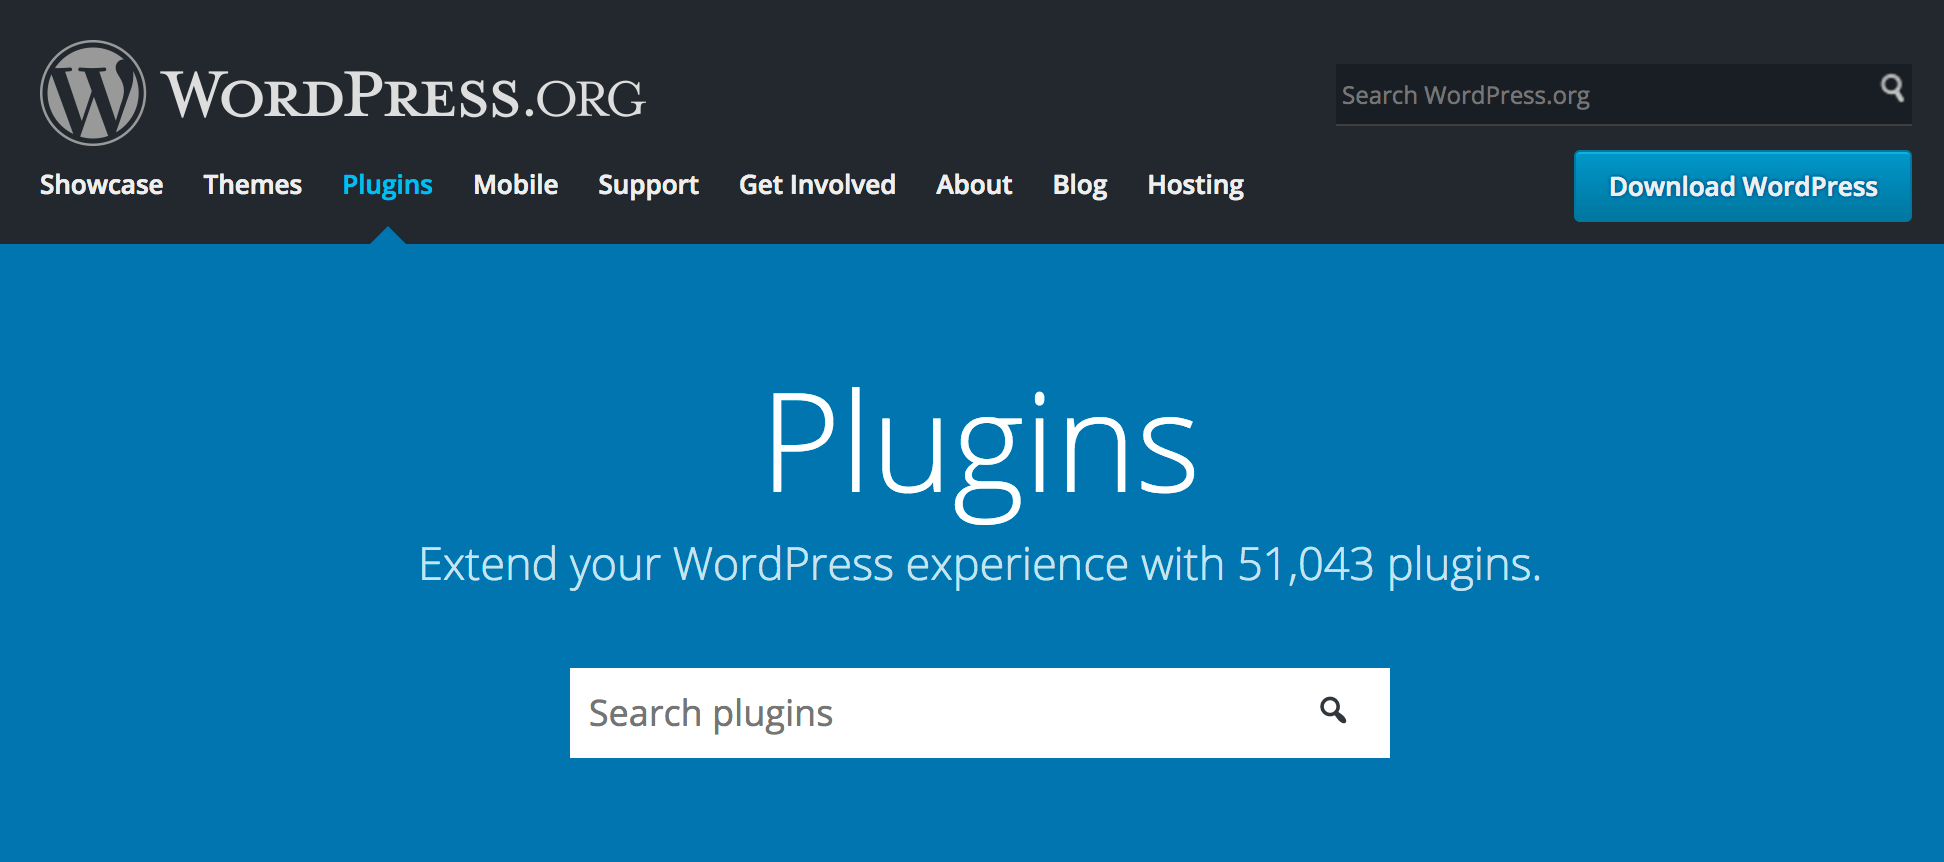 WordPress.org plugins homepage